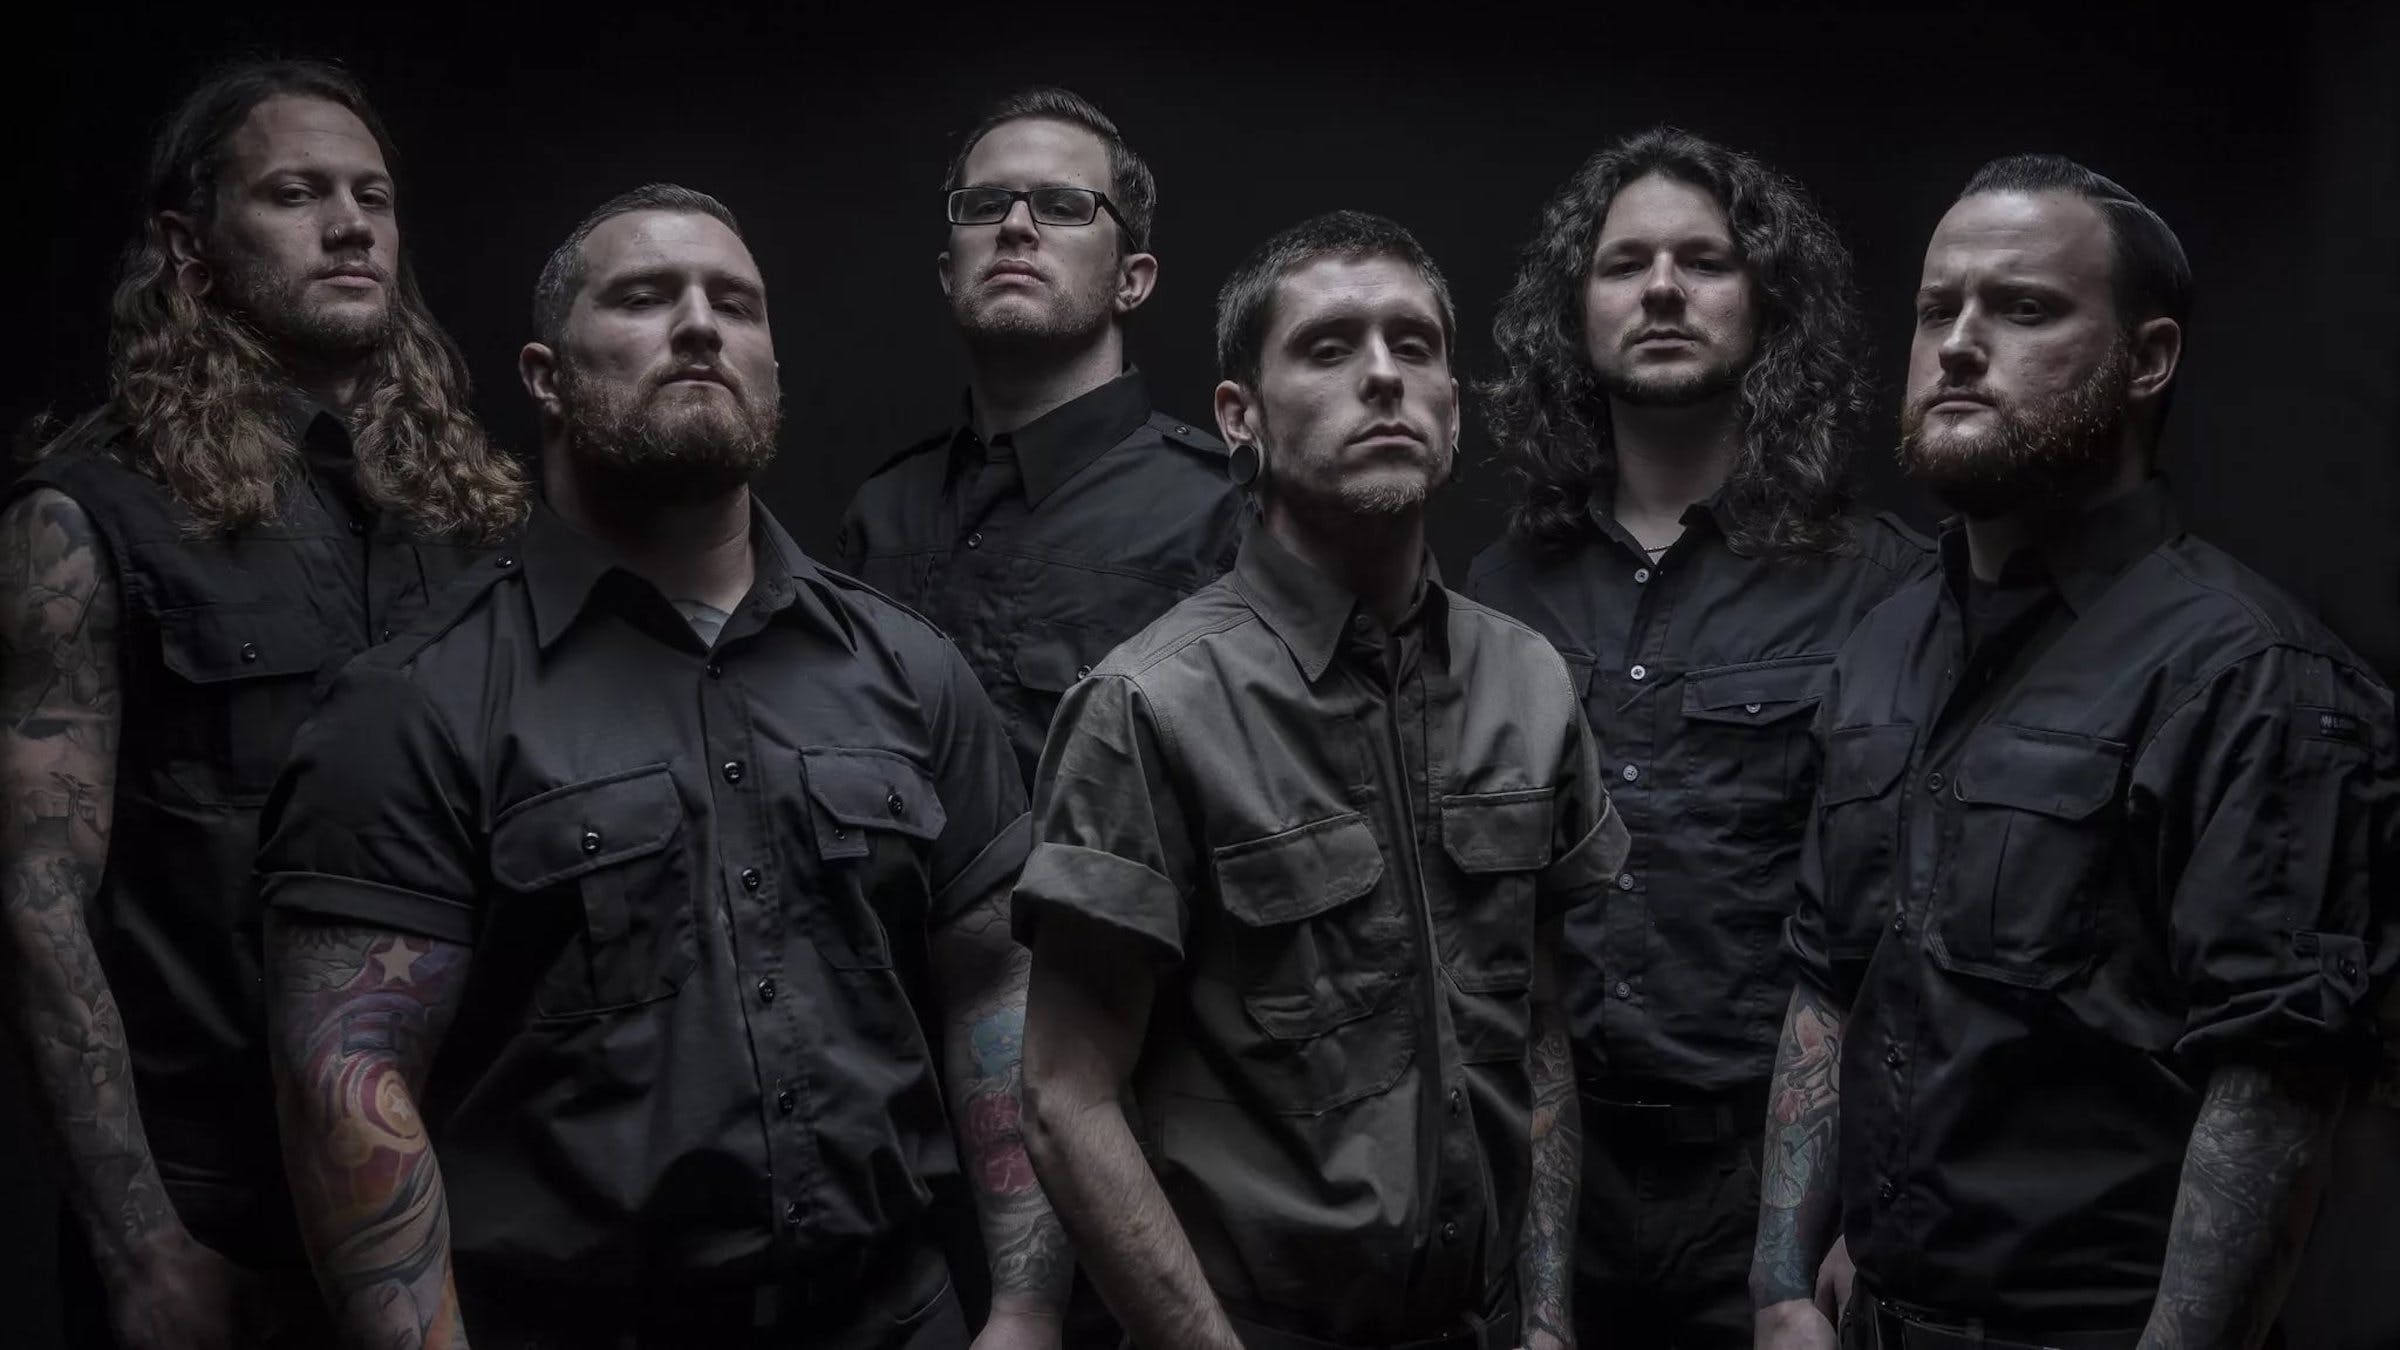 Whitechapel Stream New Track, Announce Co-Headlining Tour With Dying Fetus